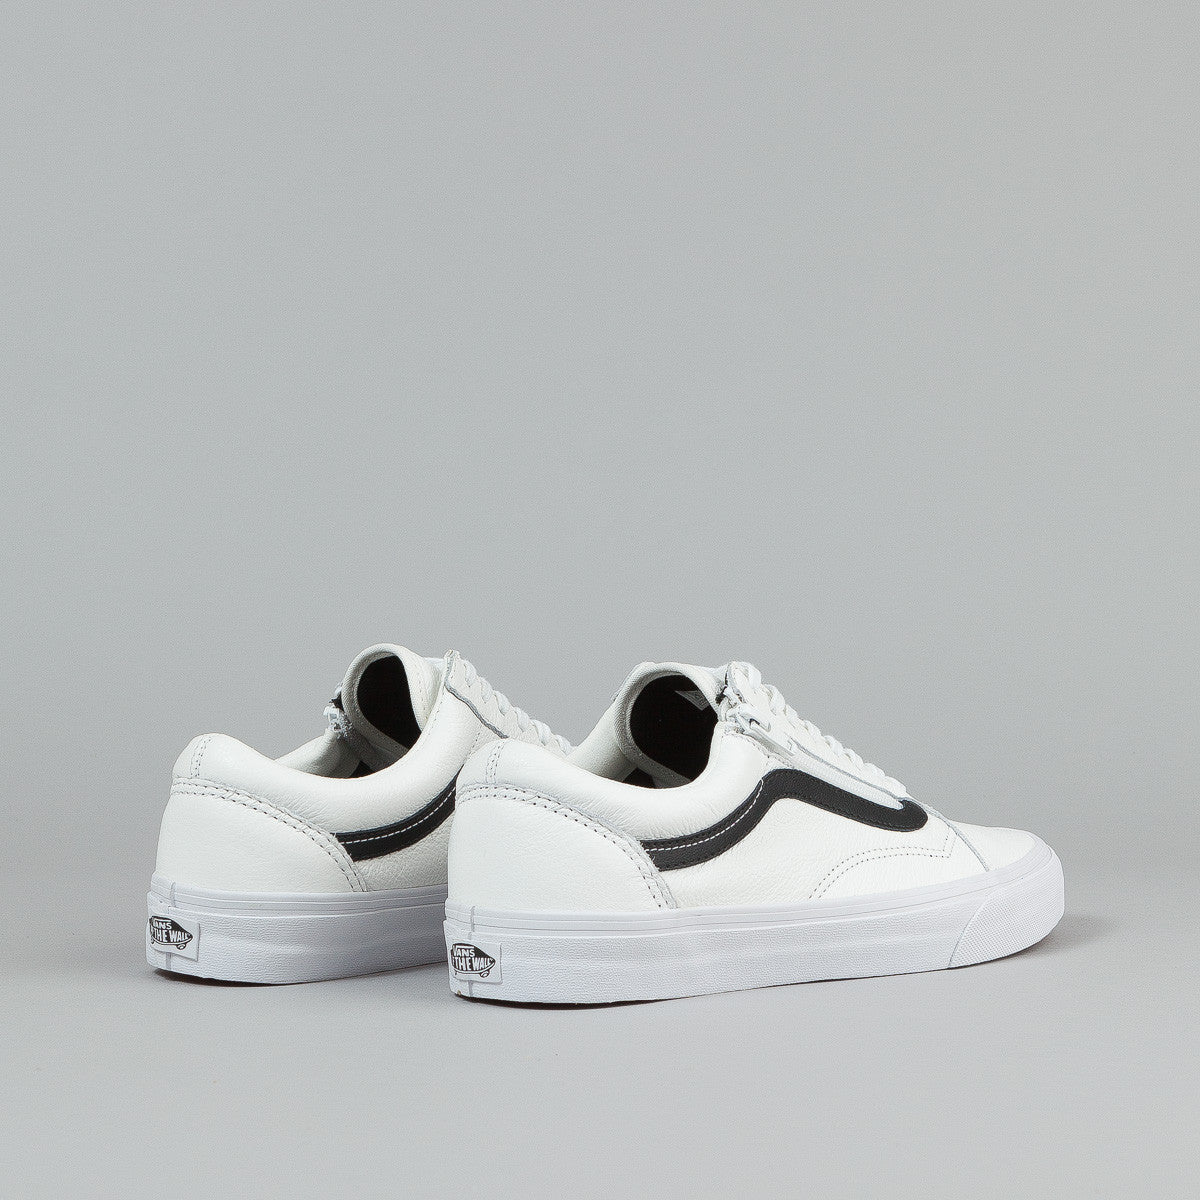 vans old skool zip shoes premium leather true white. Black Bedroom Furniture Sets. Home Design Ideas